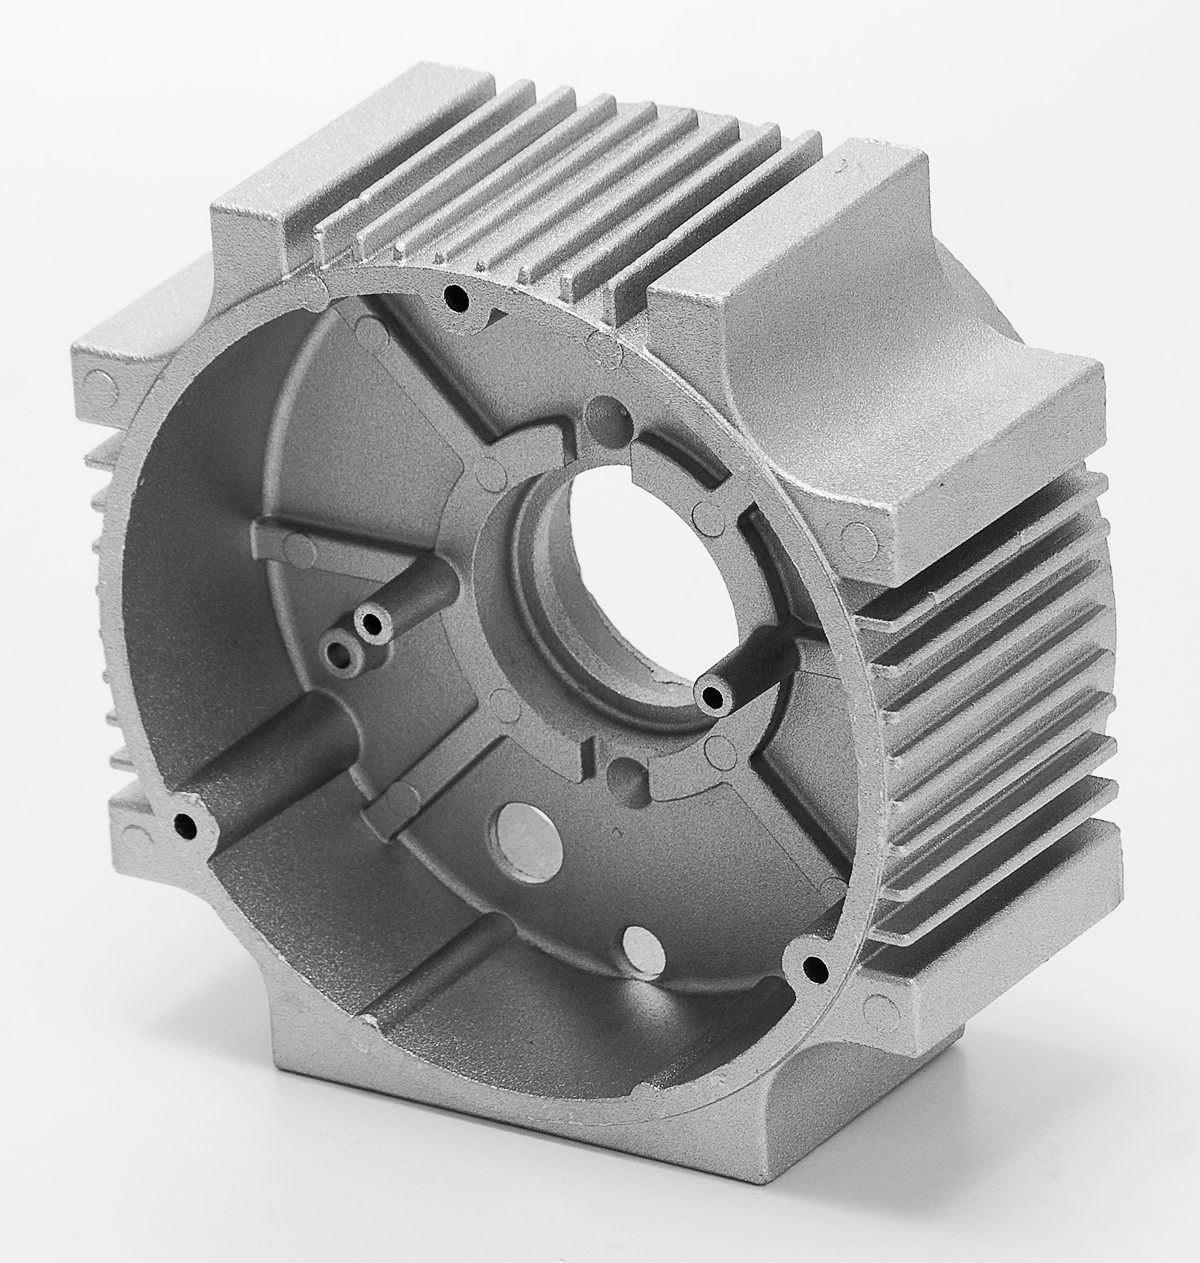 TECHNICAL DIE-CASTING INC. -